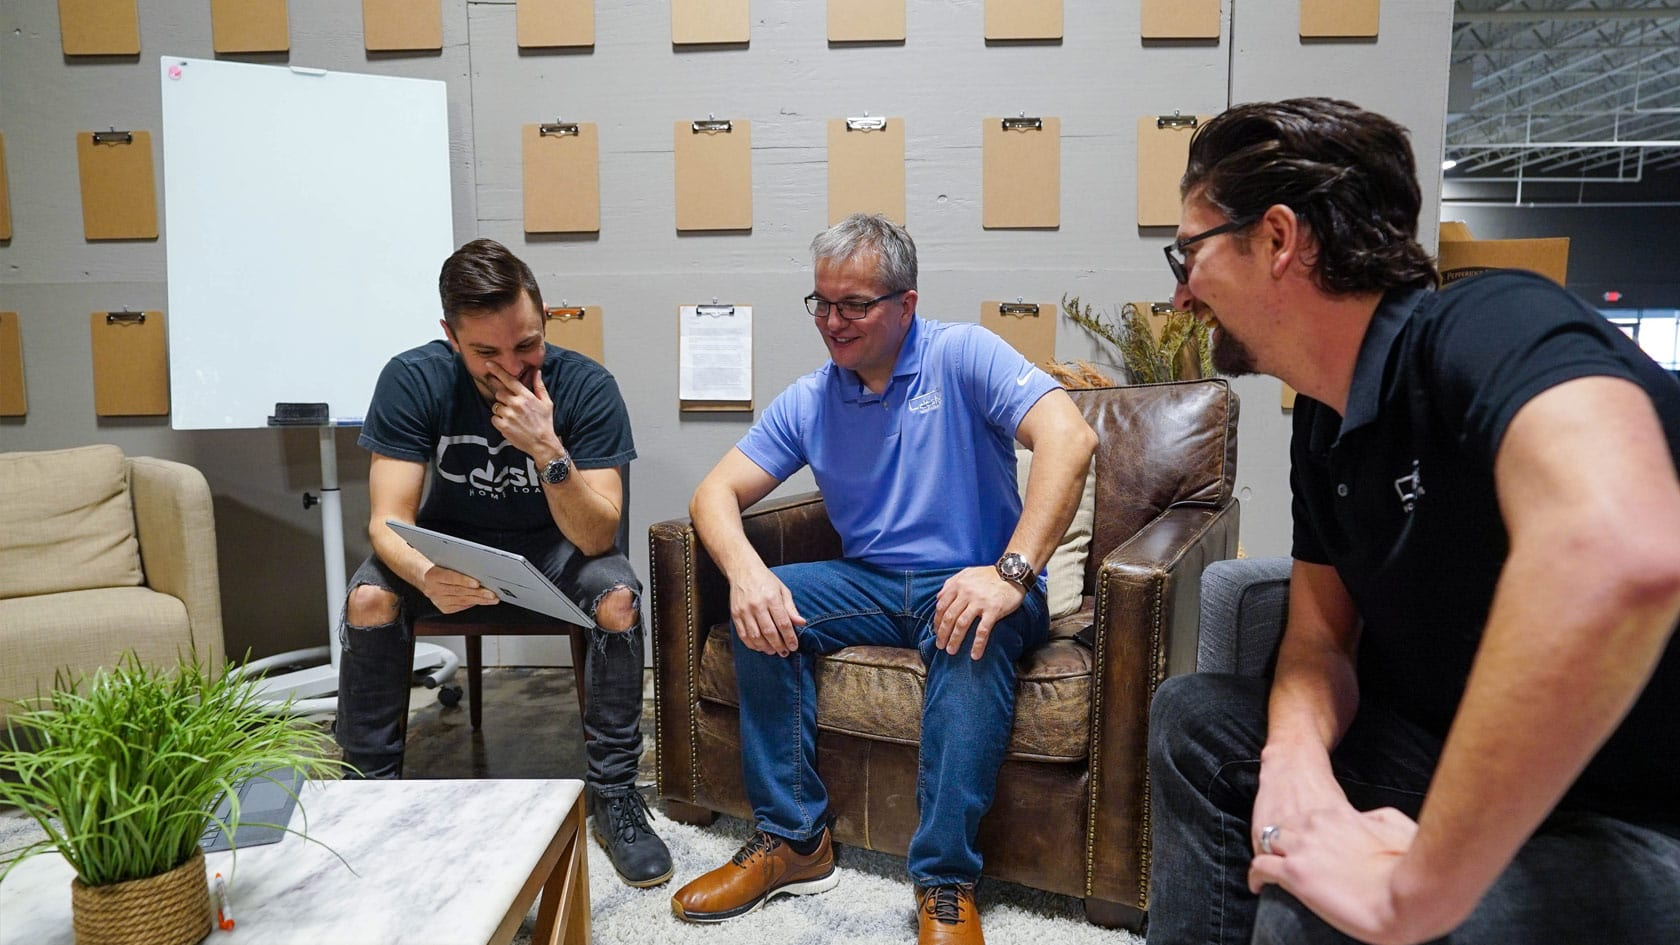 Dash founders meeting together